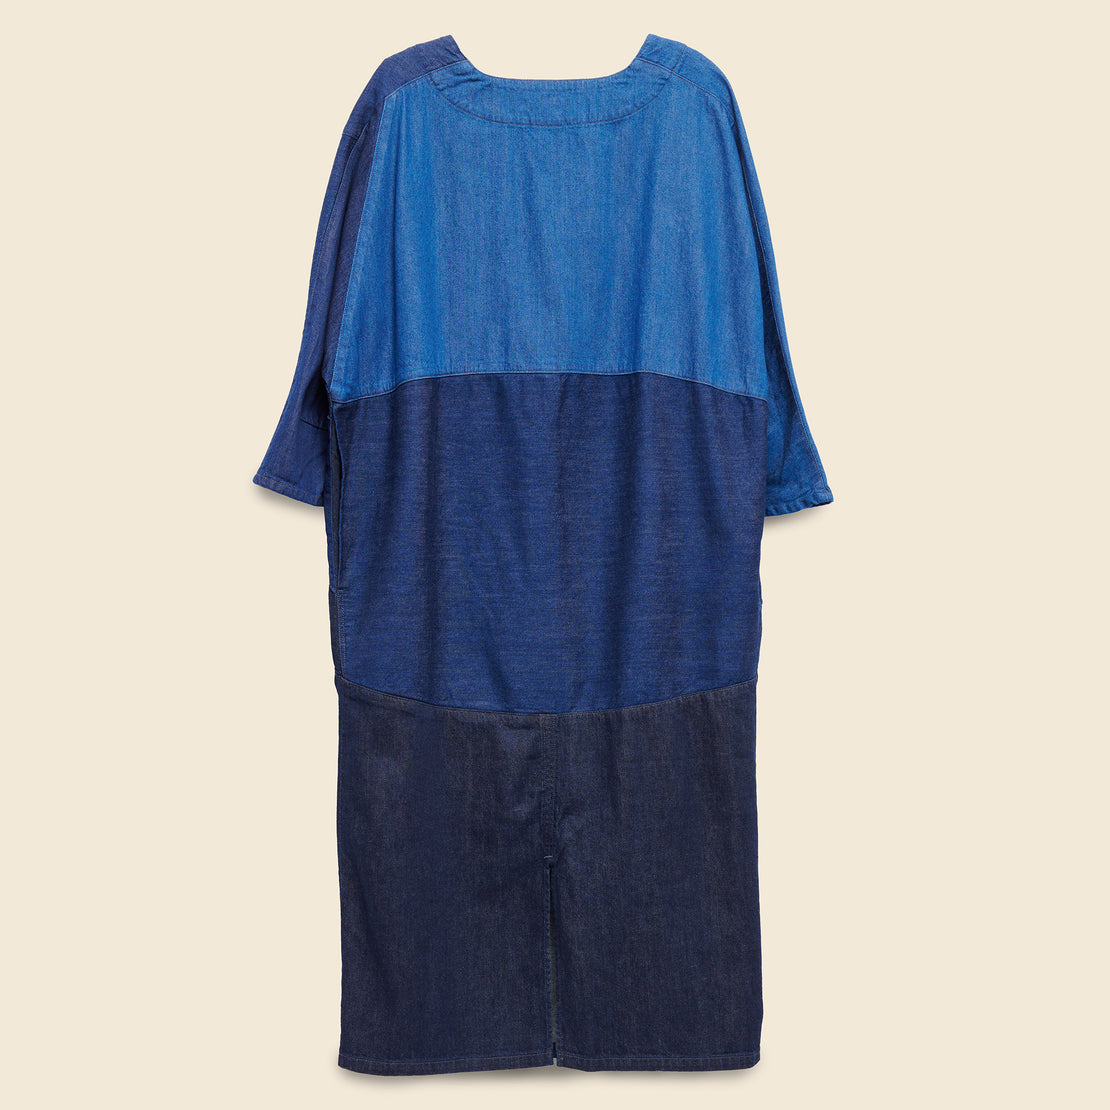 3Tones Denim Gimmick Art Dress - Indigo